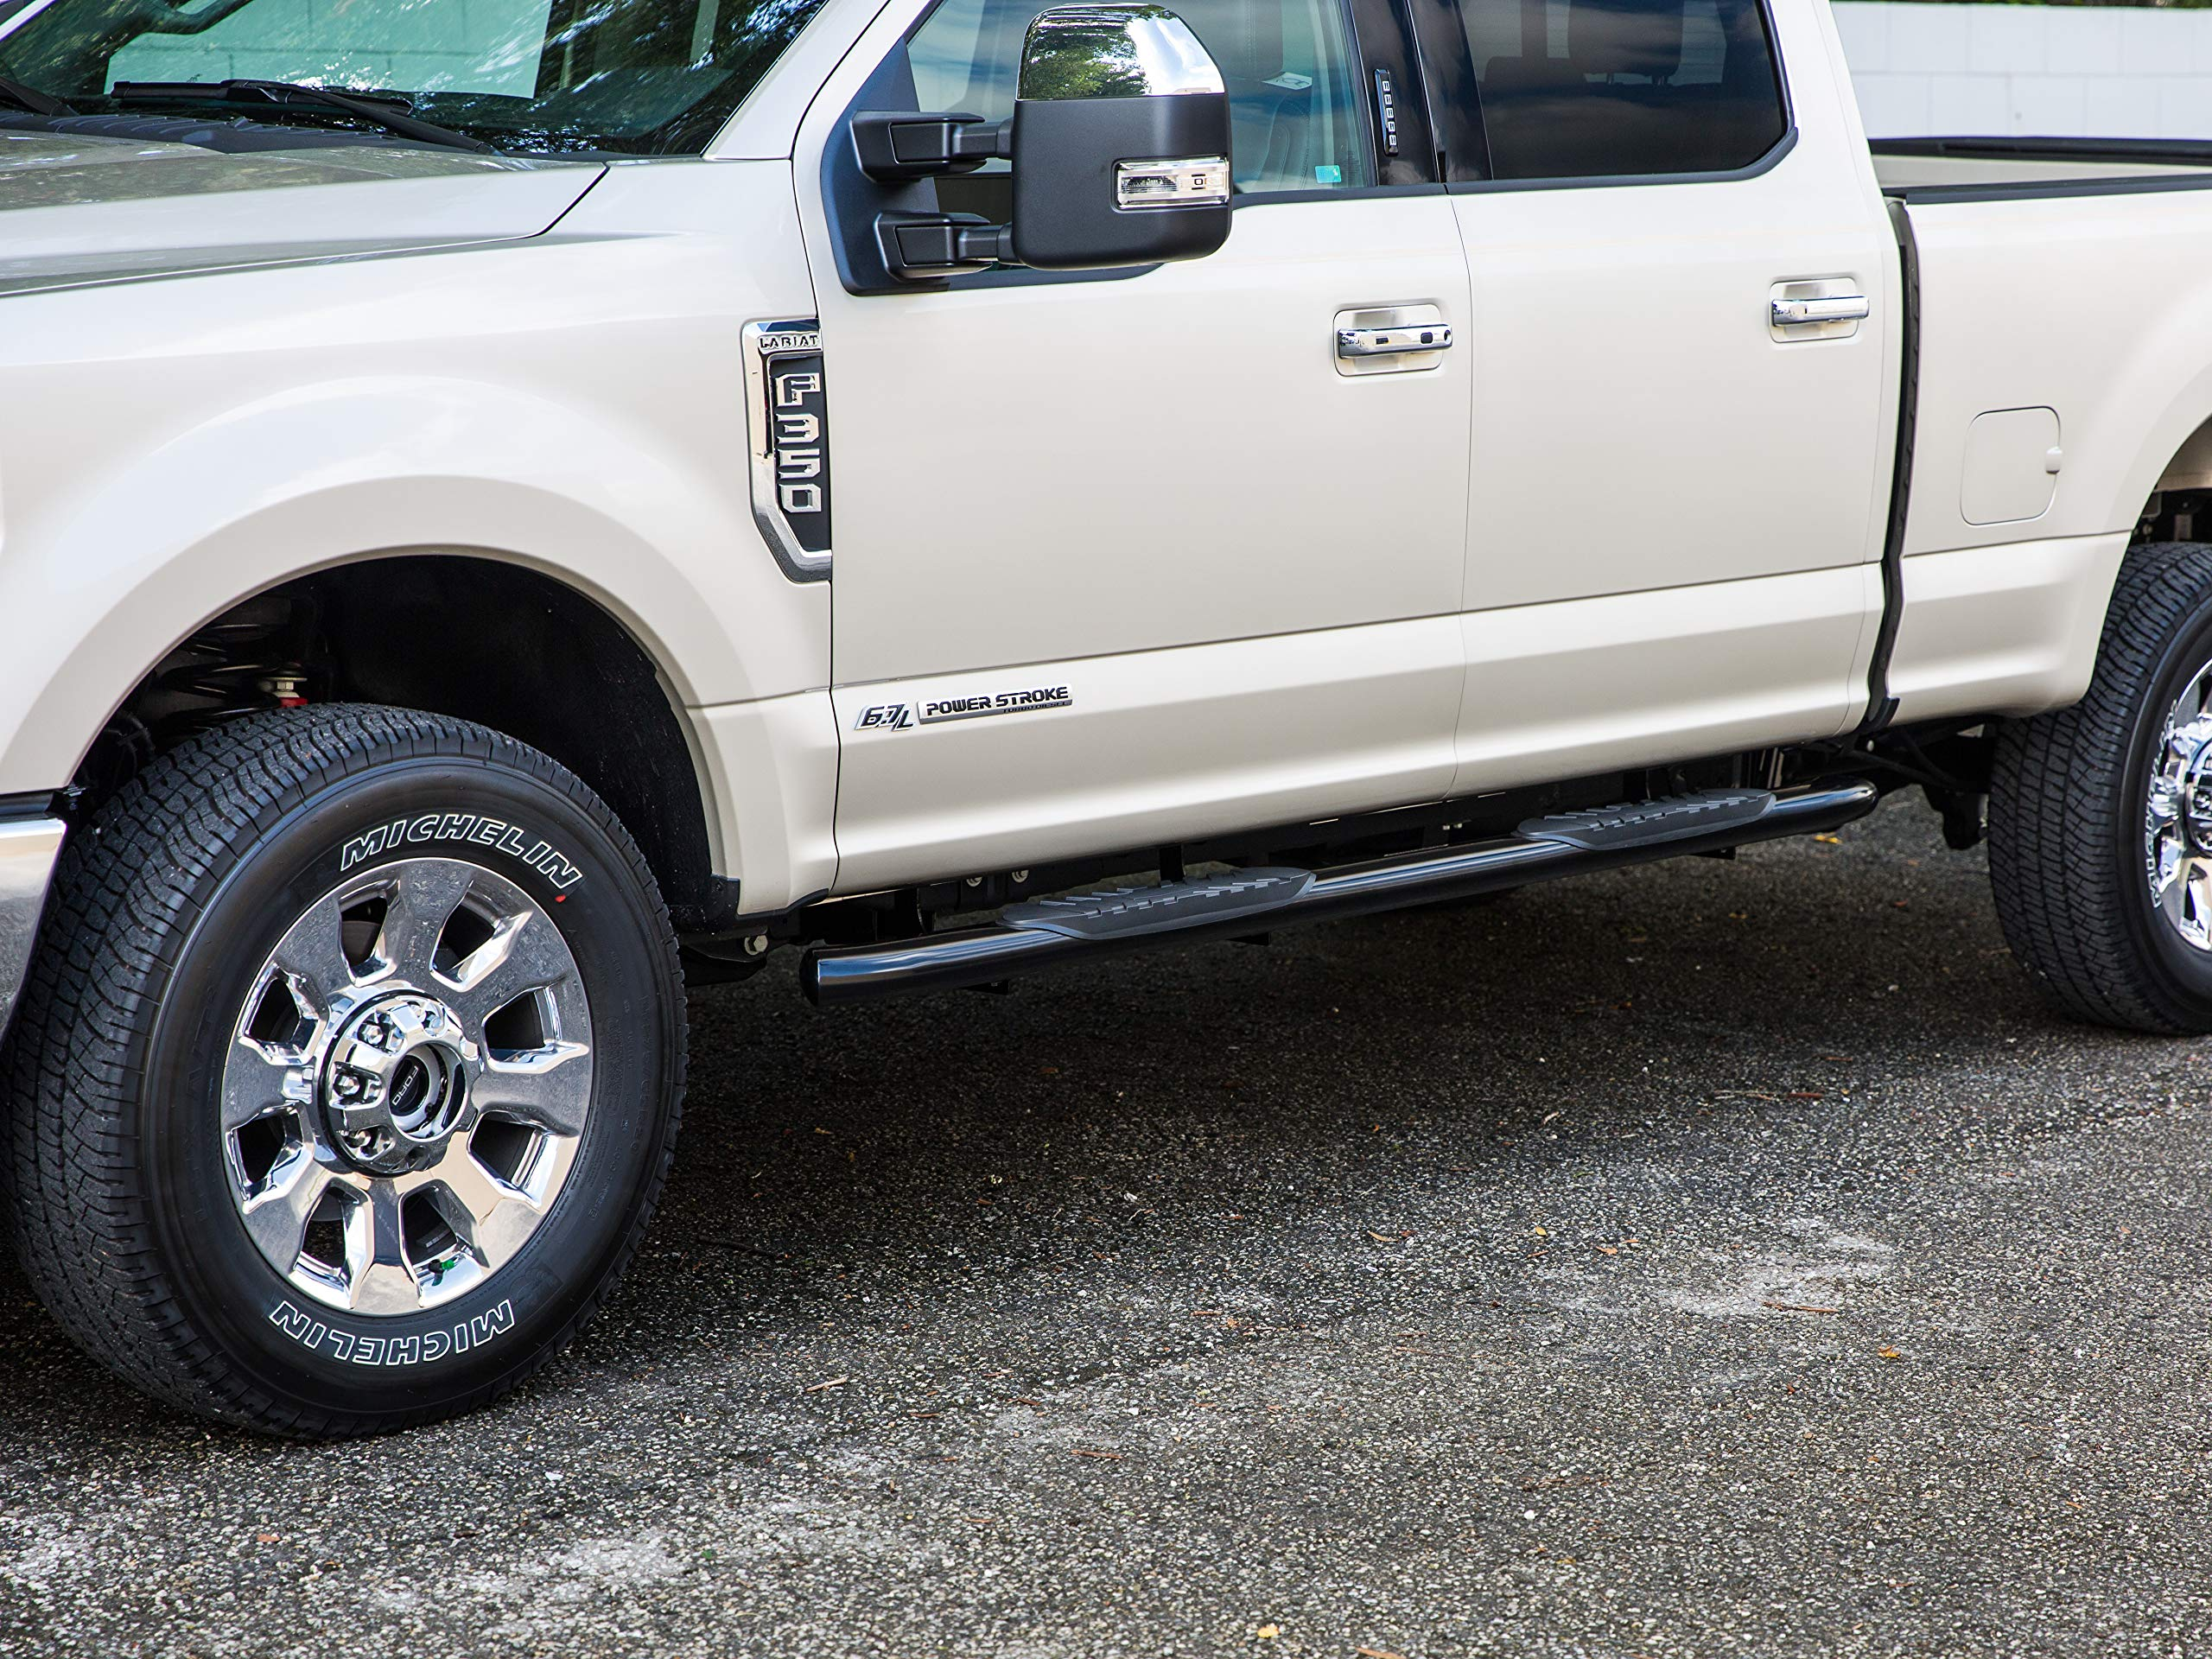 Ionic 5'' Black Steel Curved Nerf Bars (fits) 2019-Up Dodge Ram Crew Cab (New Body / 6 Lug Nut) Only Truck Side Steps (423709BP) by Ionic Automotive (Image #5)